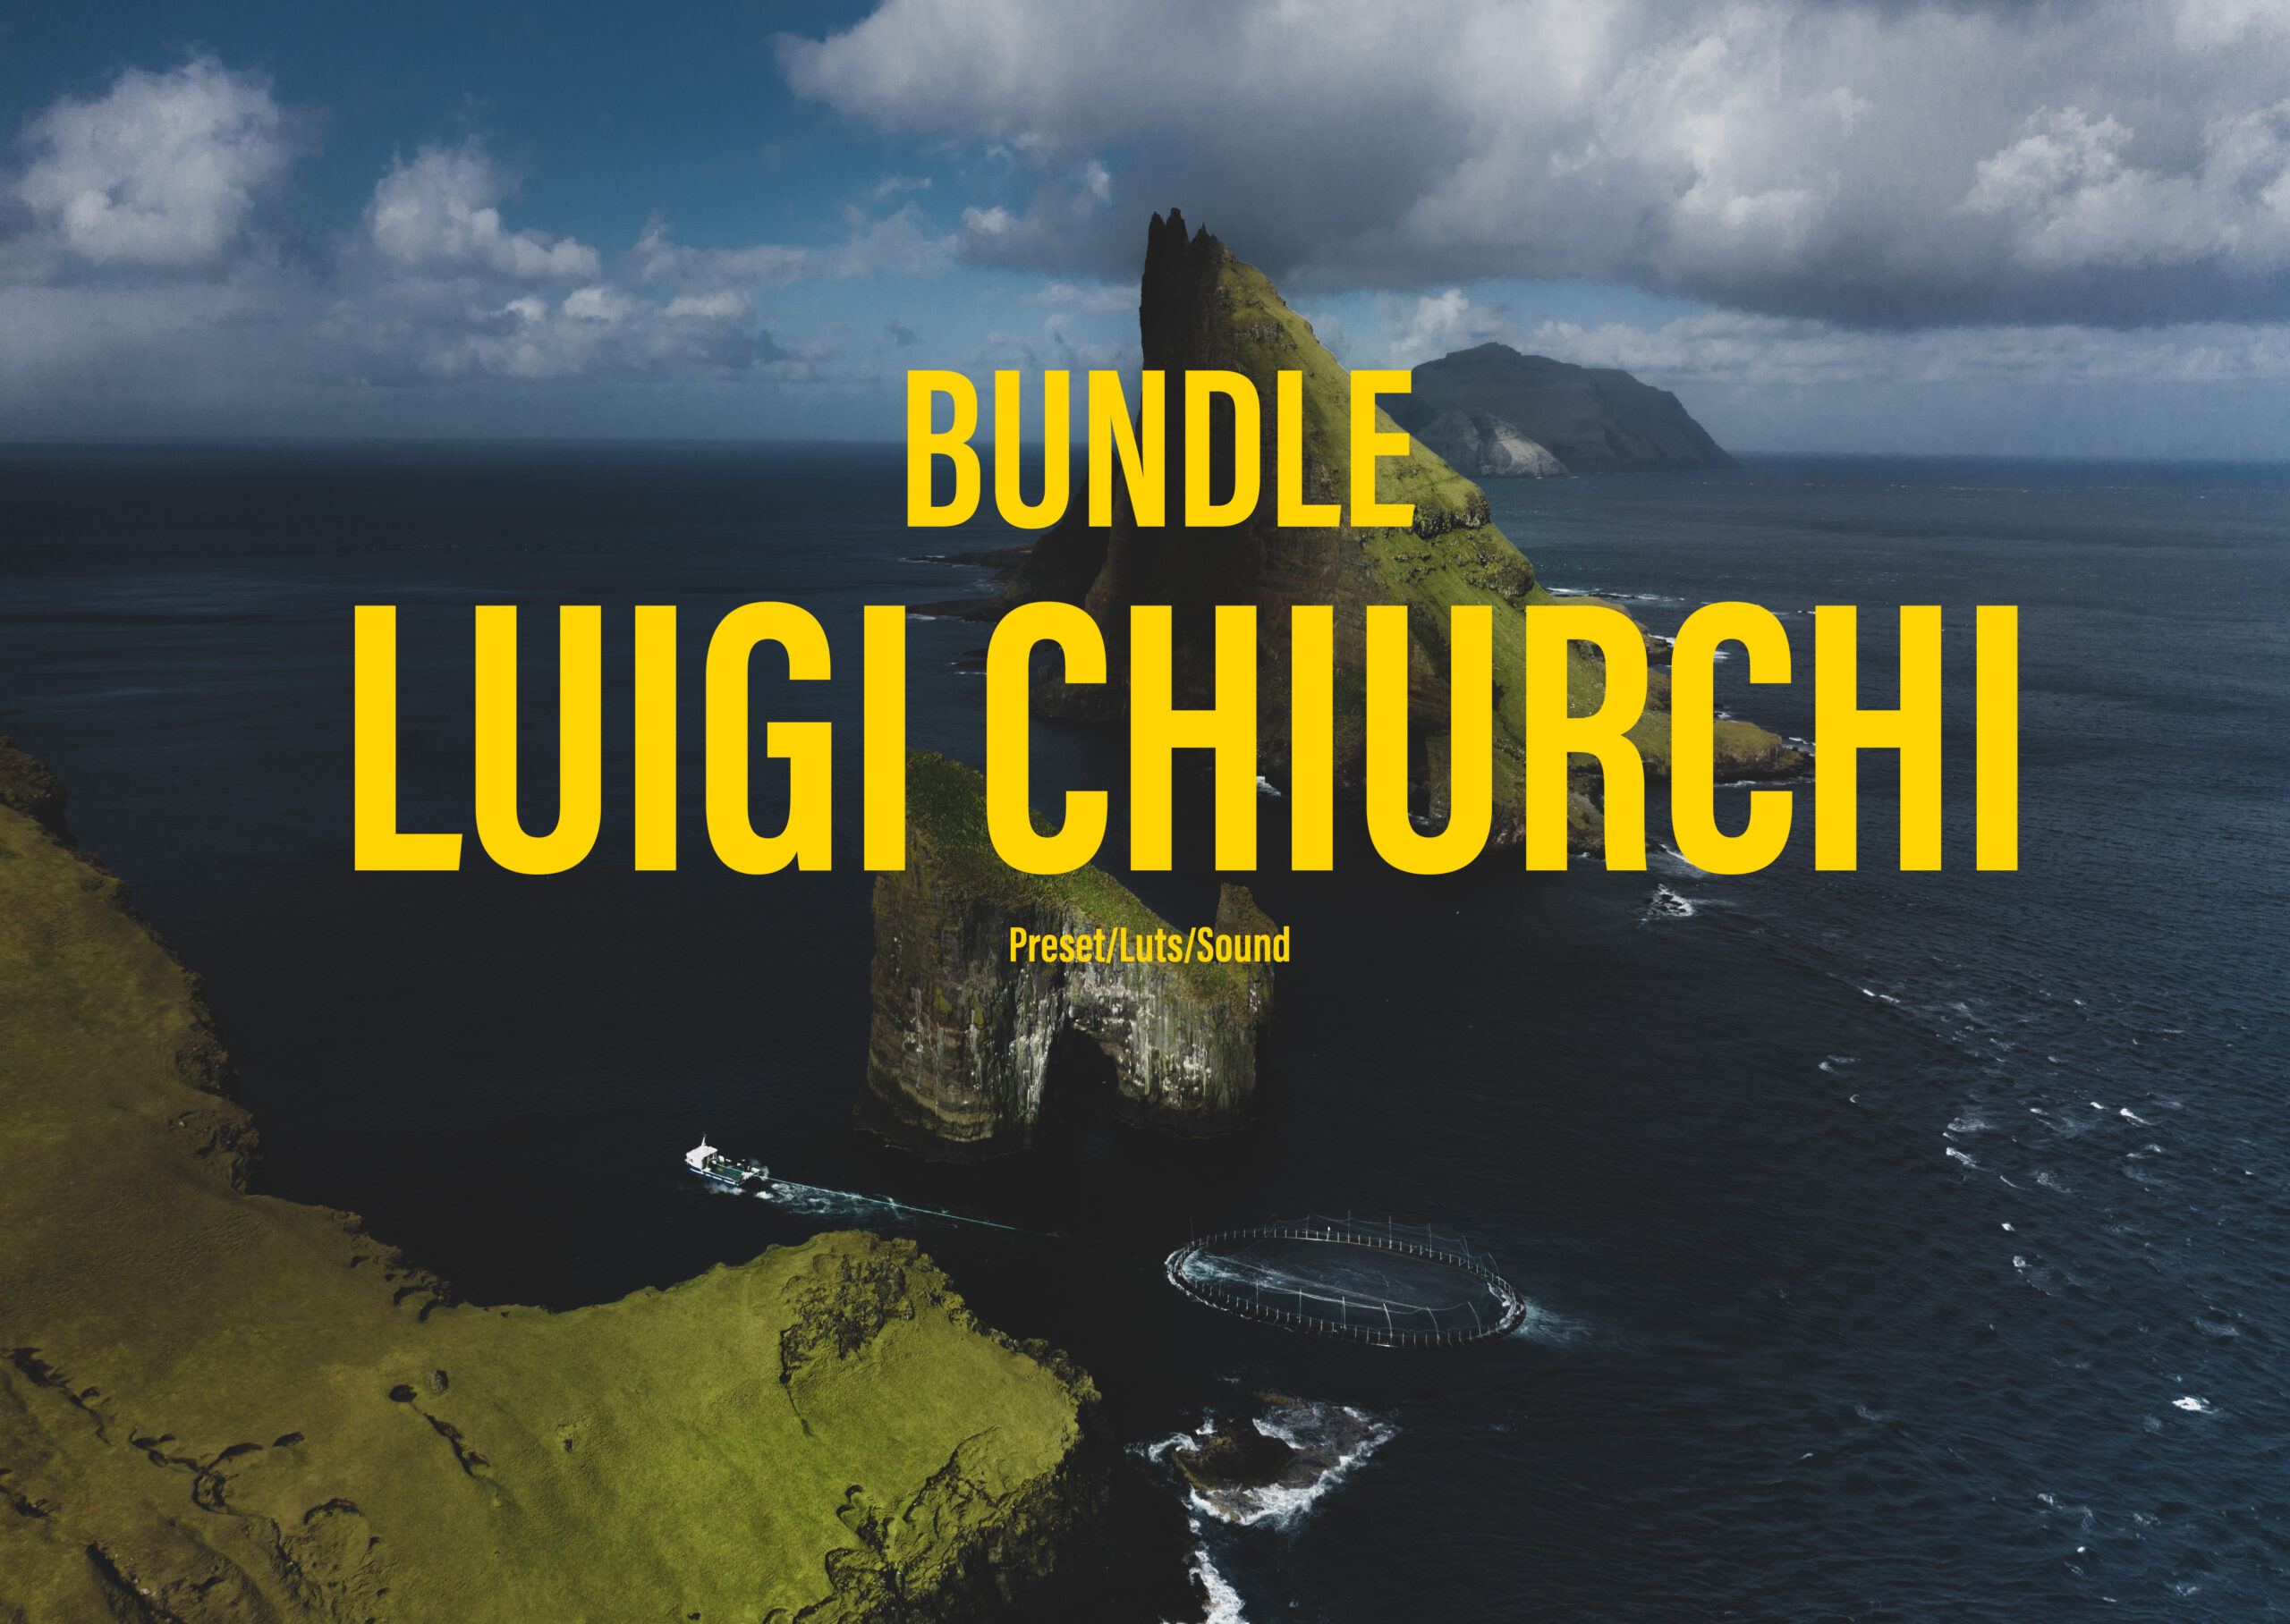 luigi chiurchi sound fx bundle